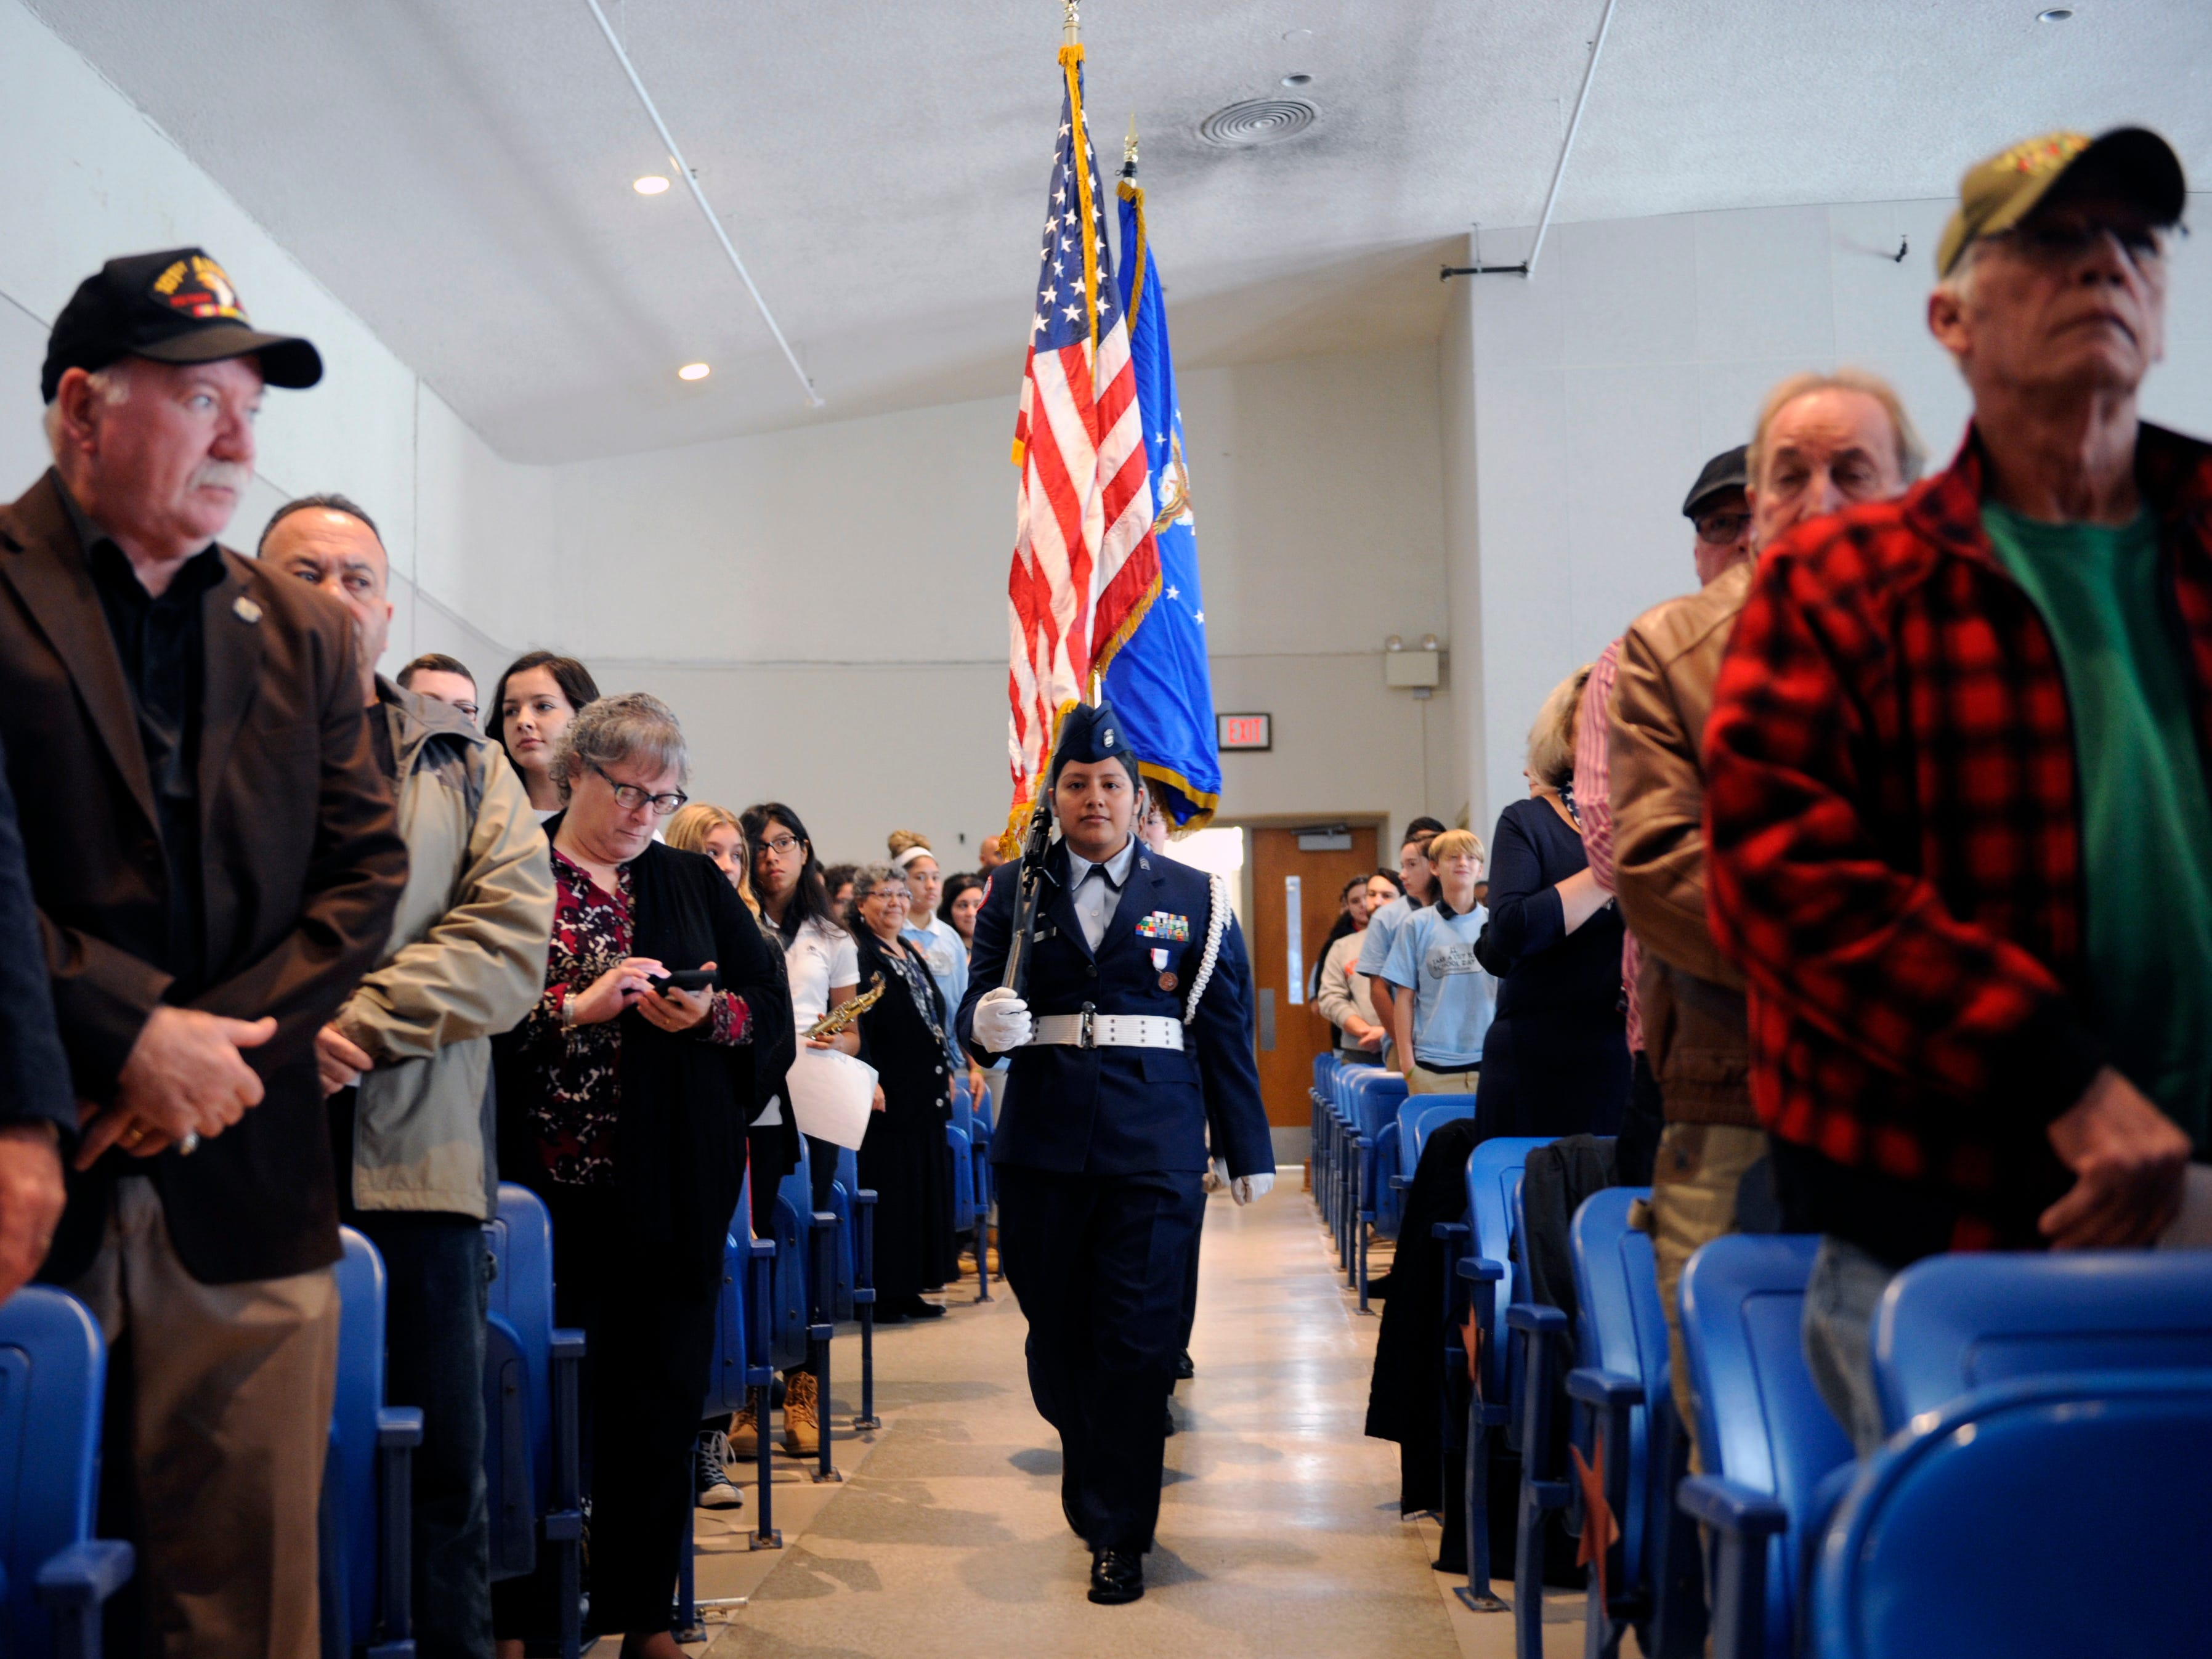 Mirian Marcial, Vineland High School Air Force Junior ROTC member carries the American flag during a special assembly honoring heroes at Veterans Memorial School on Wednesday, November 14, 2018.